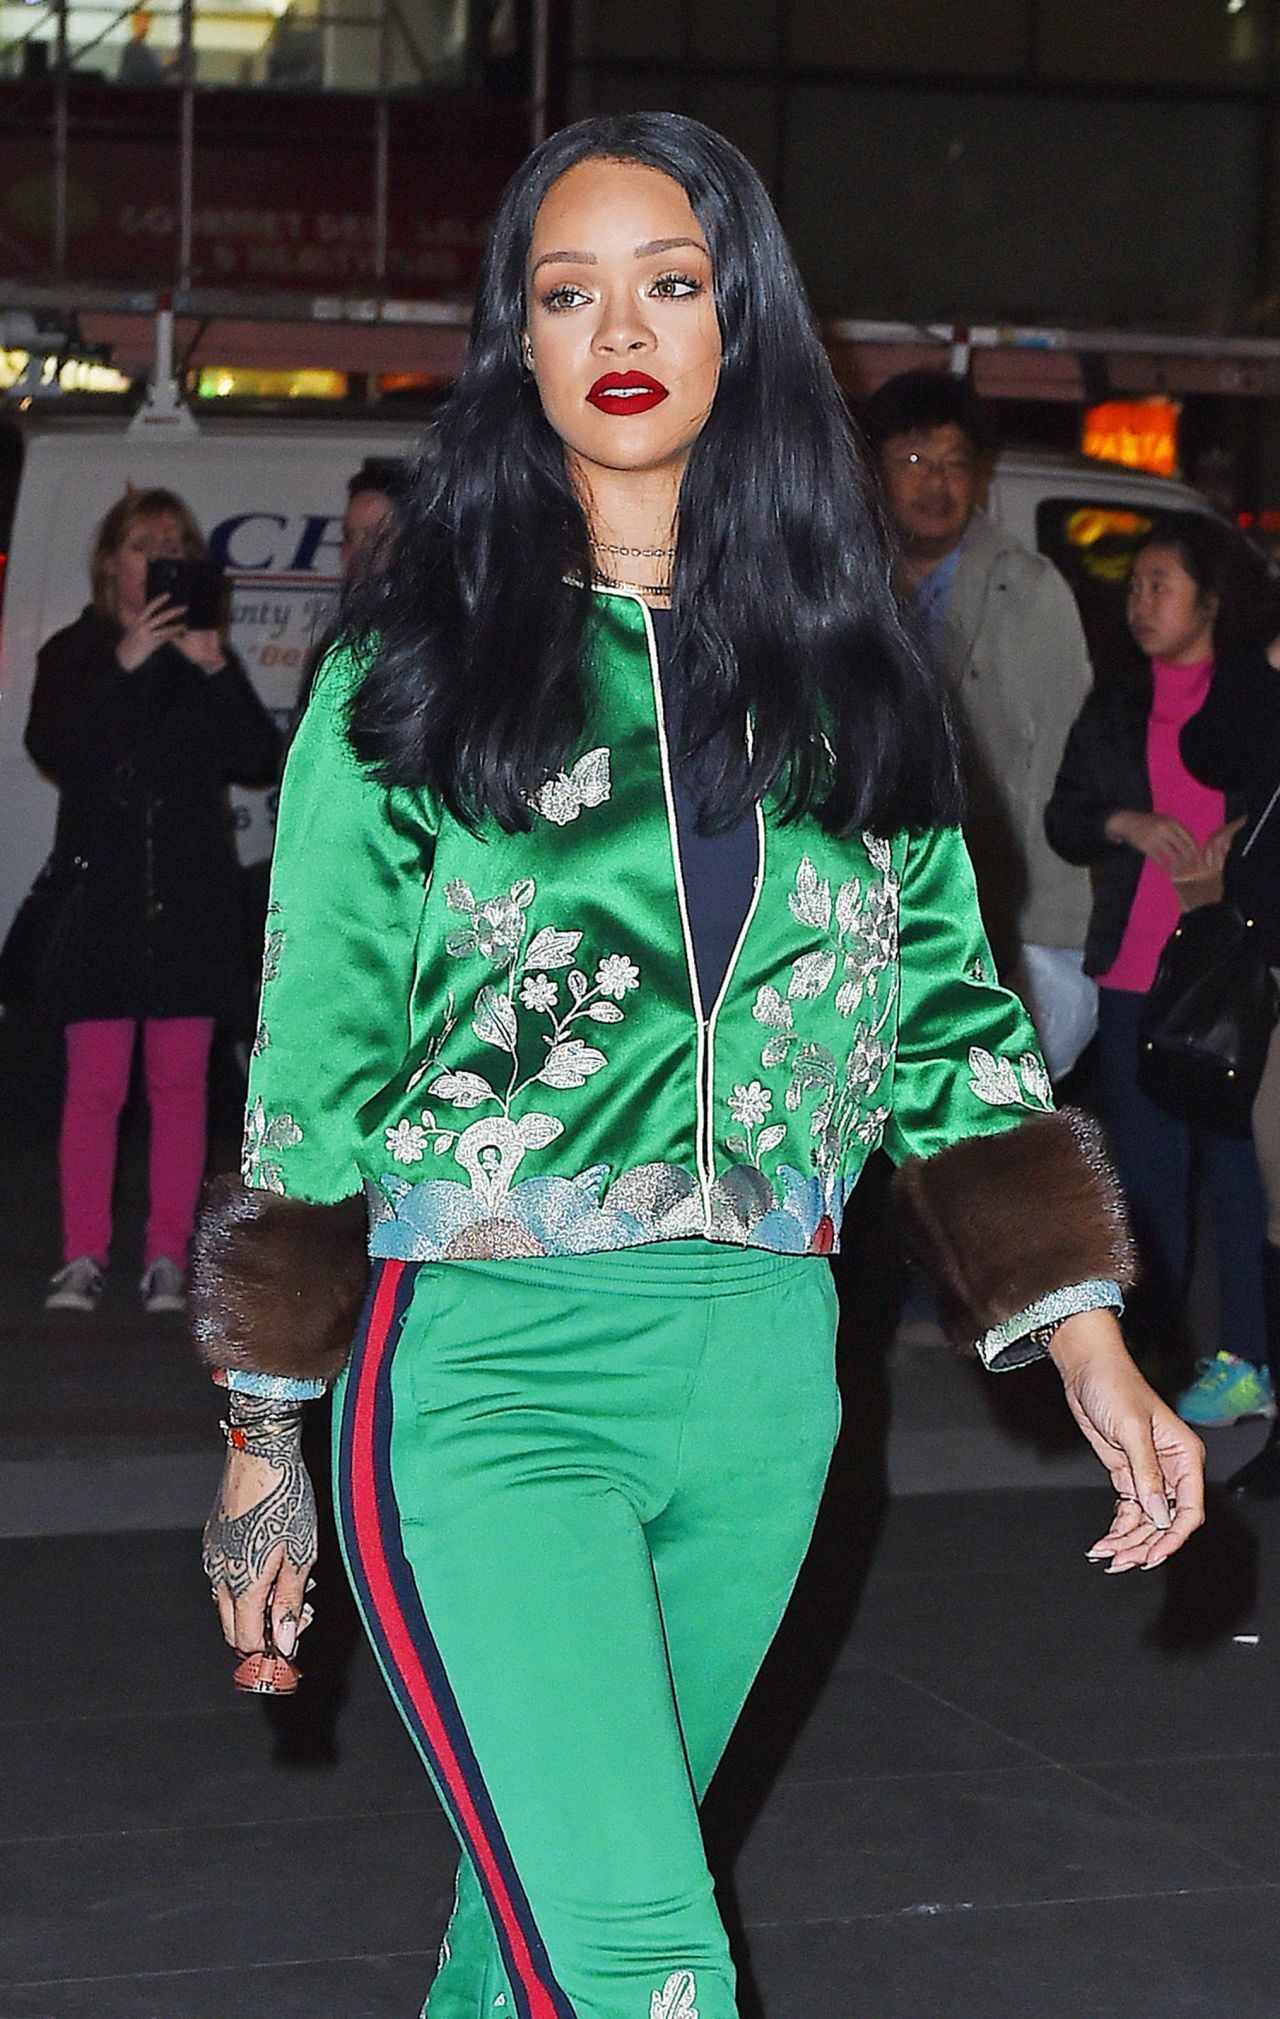 rihanna-looks-great-in-green-out-in-new-york-city-3-28-2016-1